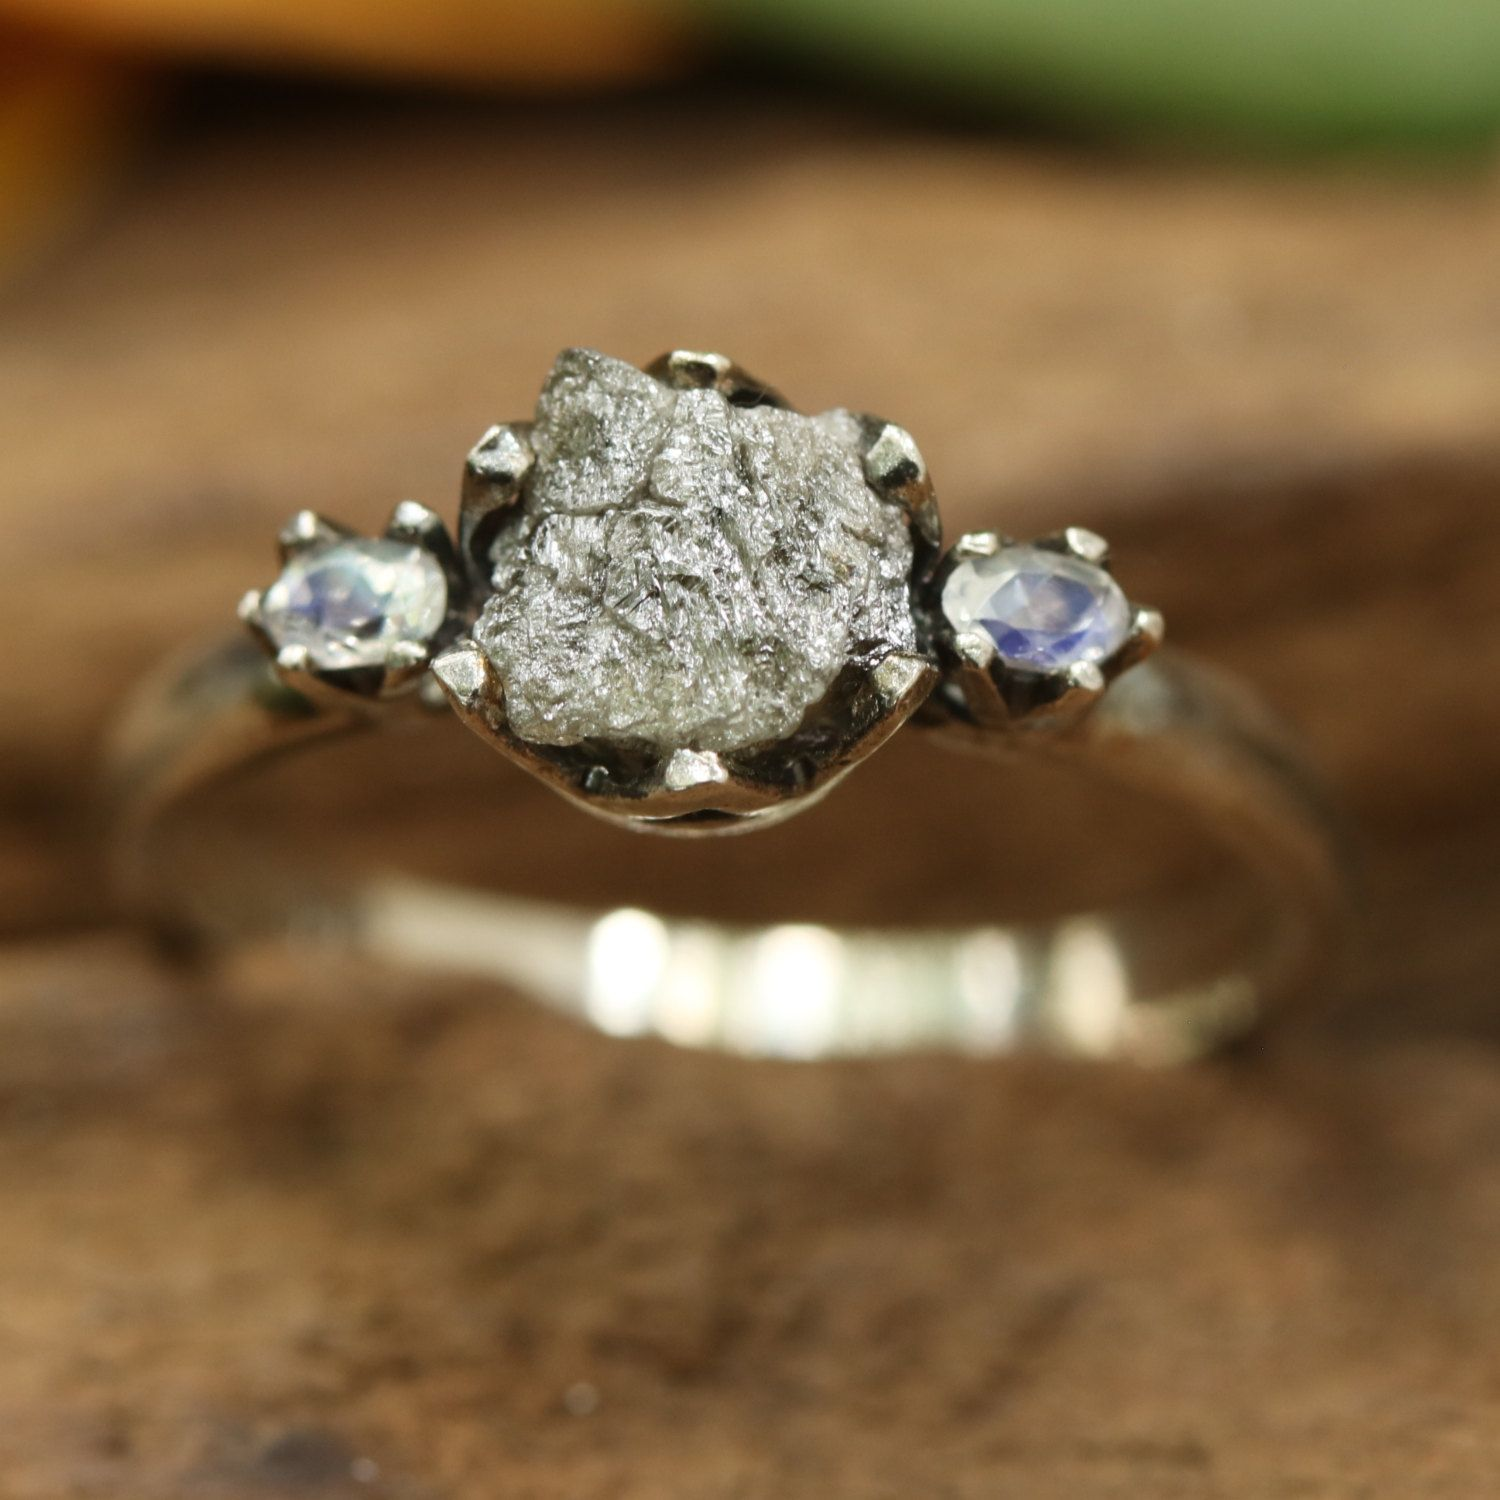 neal rings rough bario linear custom cust ring diamond gunter